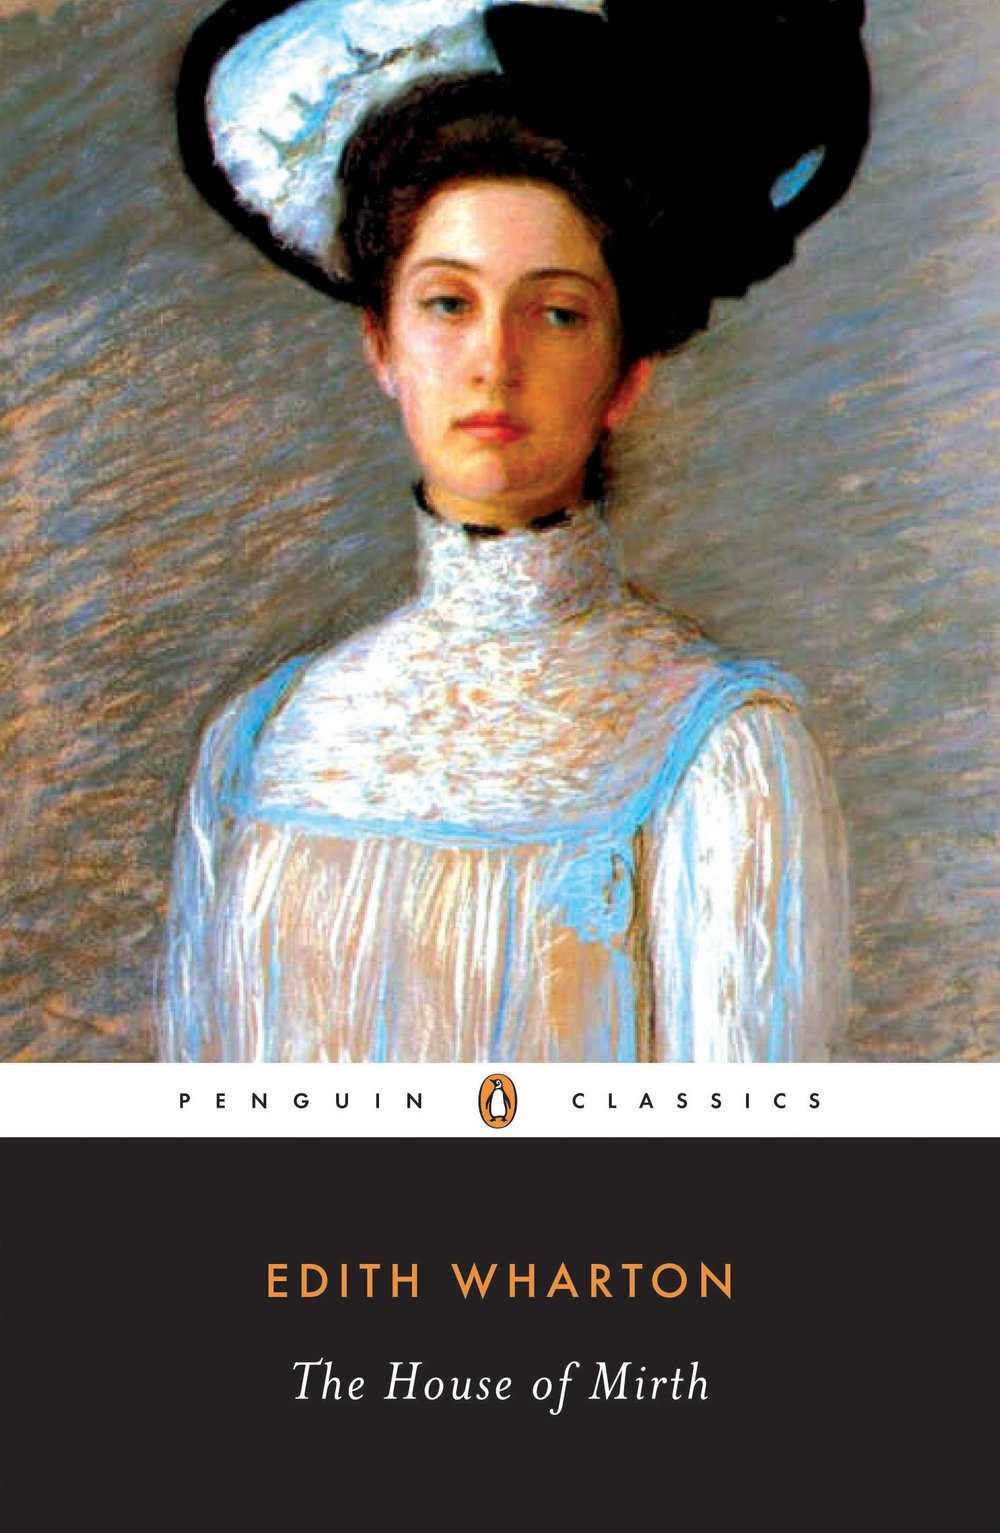 The House of Mirth by edith wharton.jpg